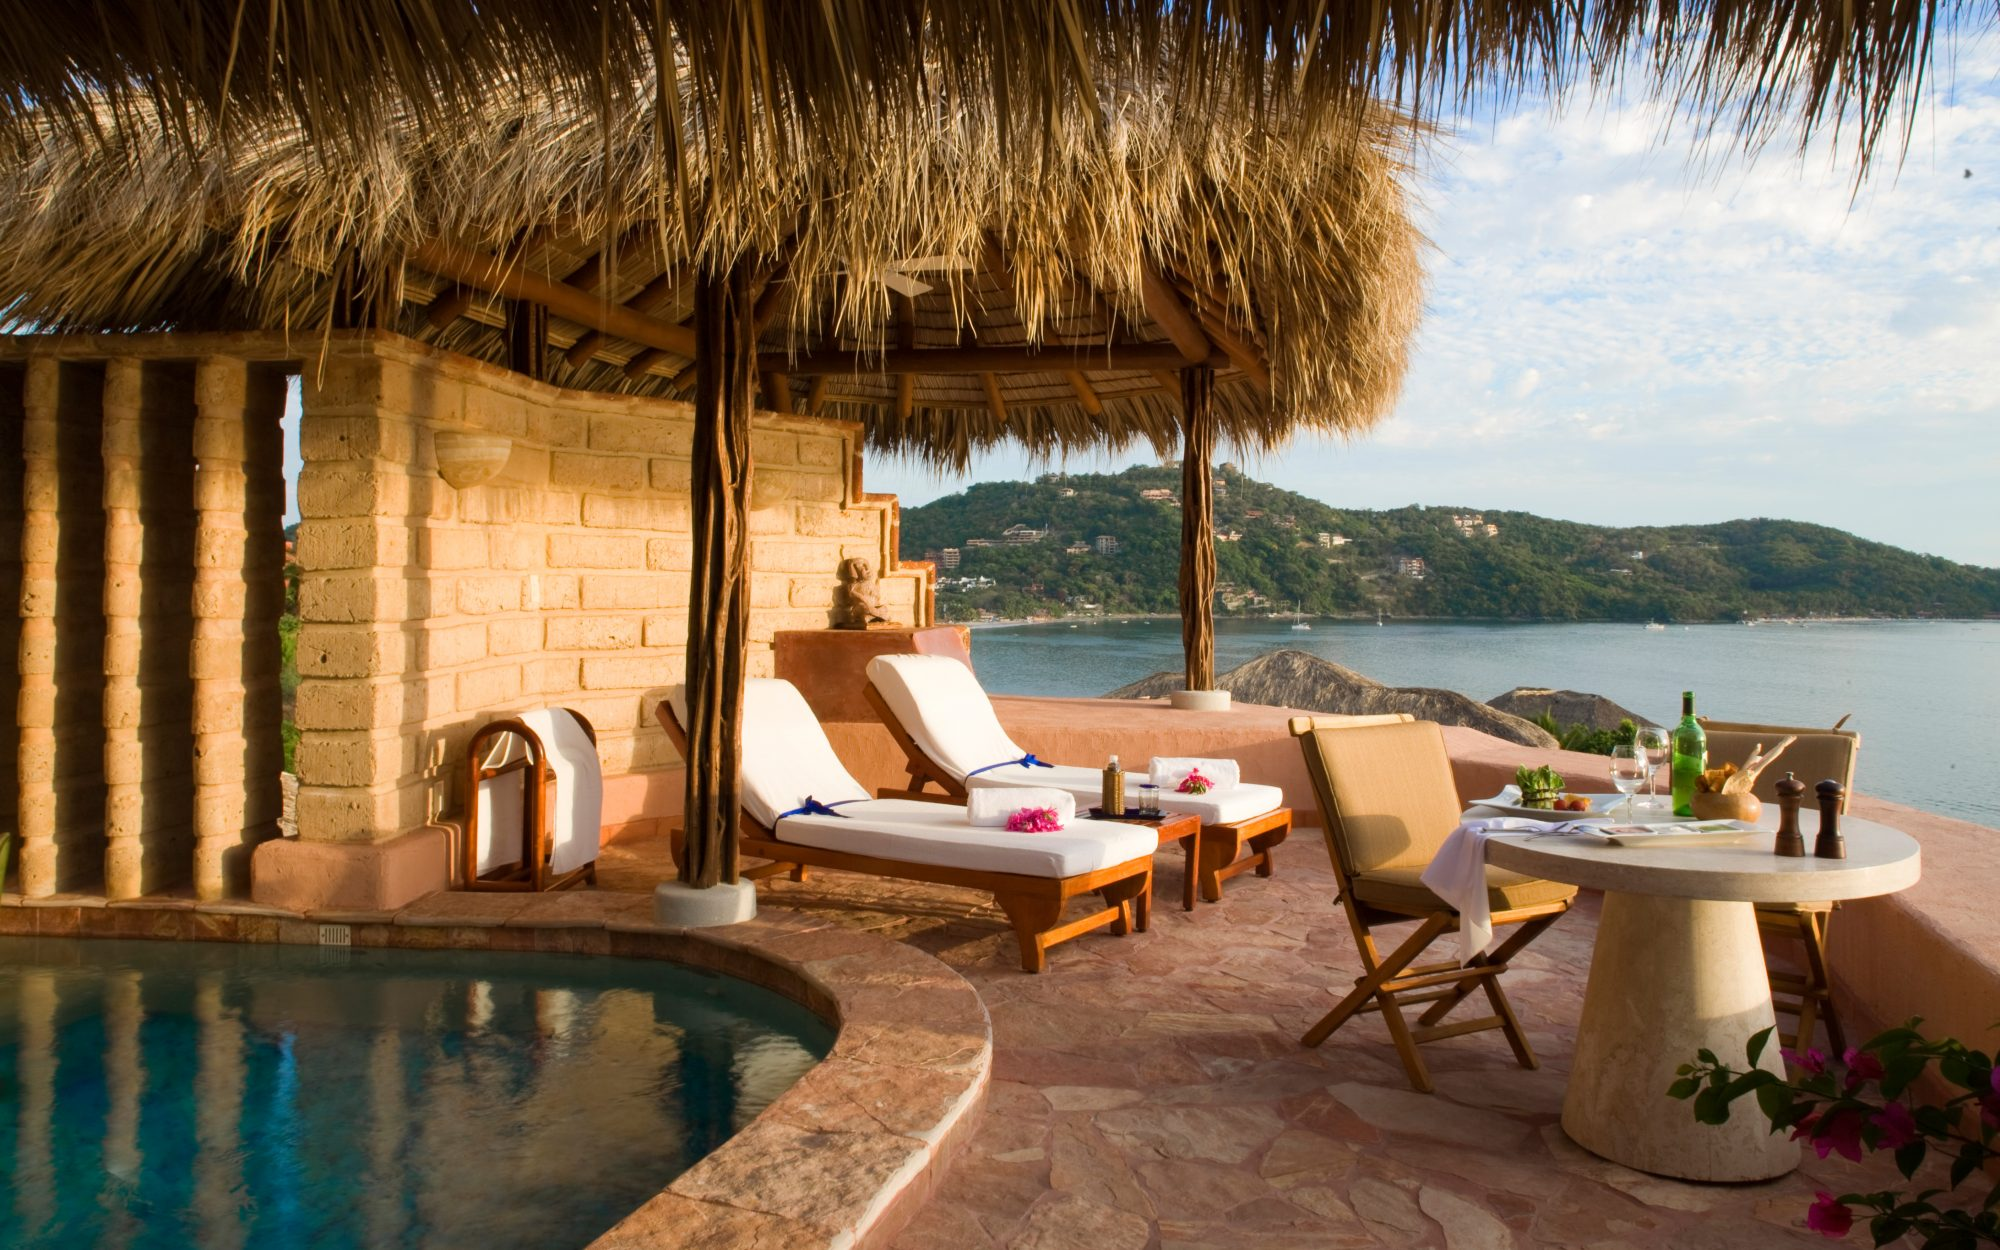 Best Mexico Beach Resorts: La Casa Que Canta